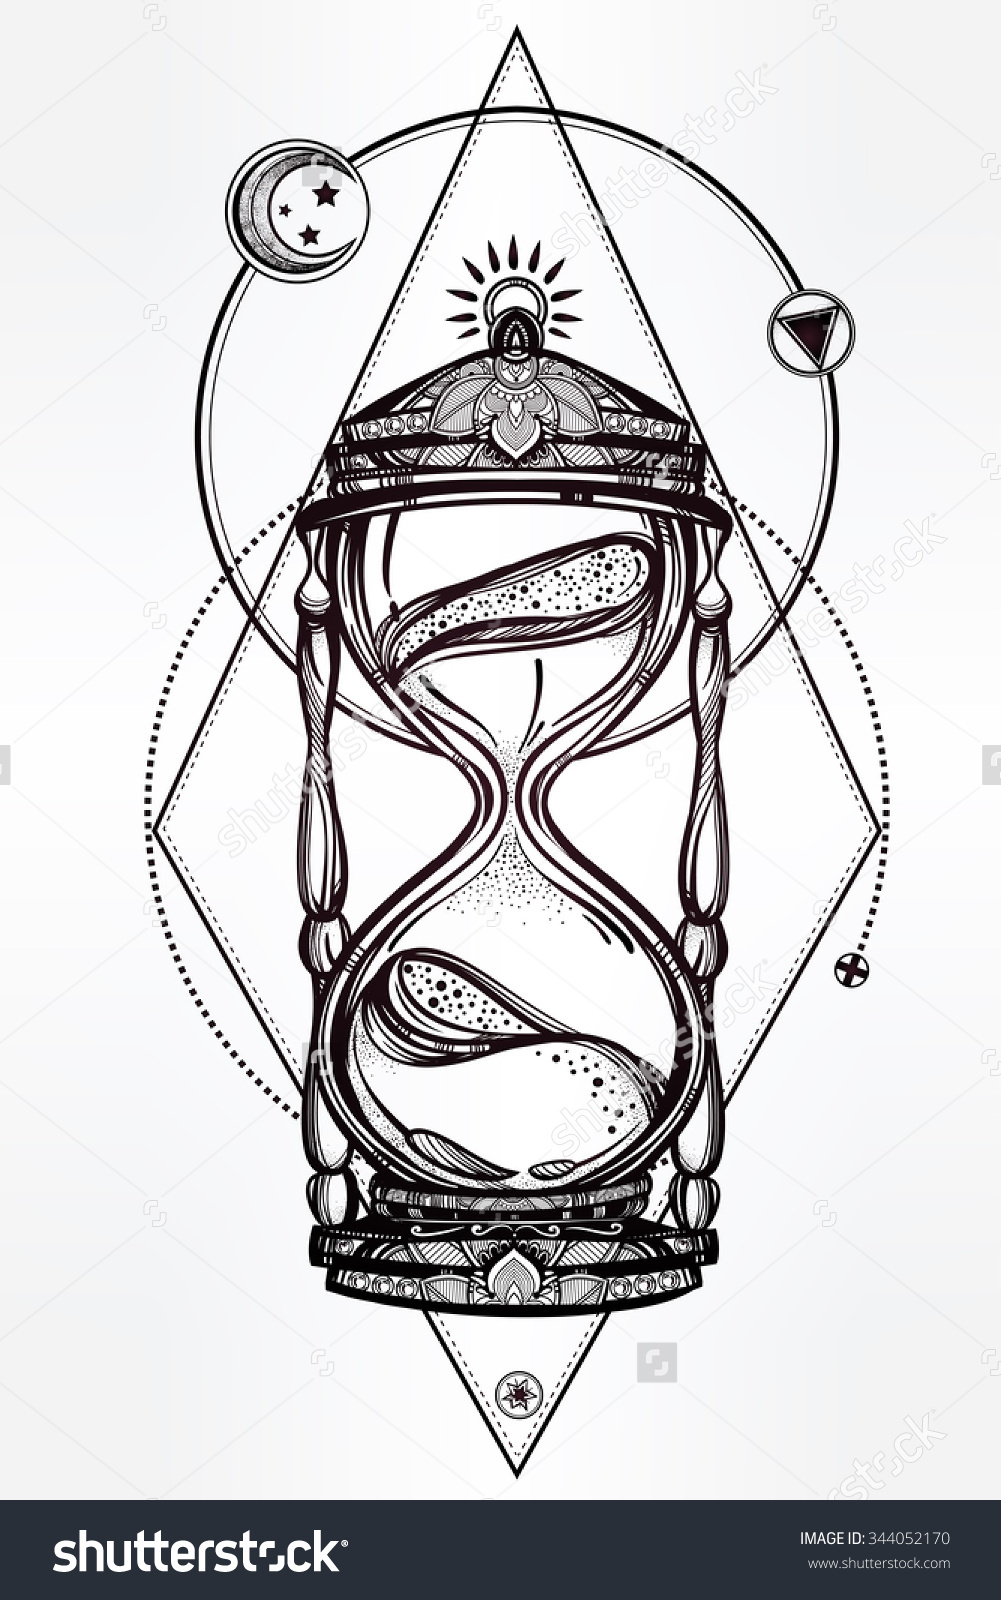 Drawn watch hand vector Drawn hourglass of Vector Vector